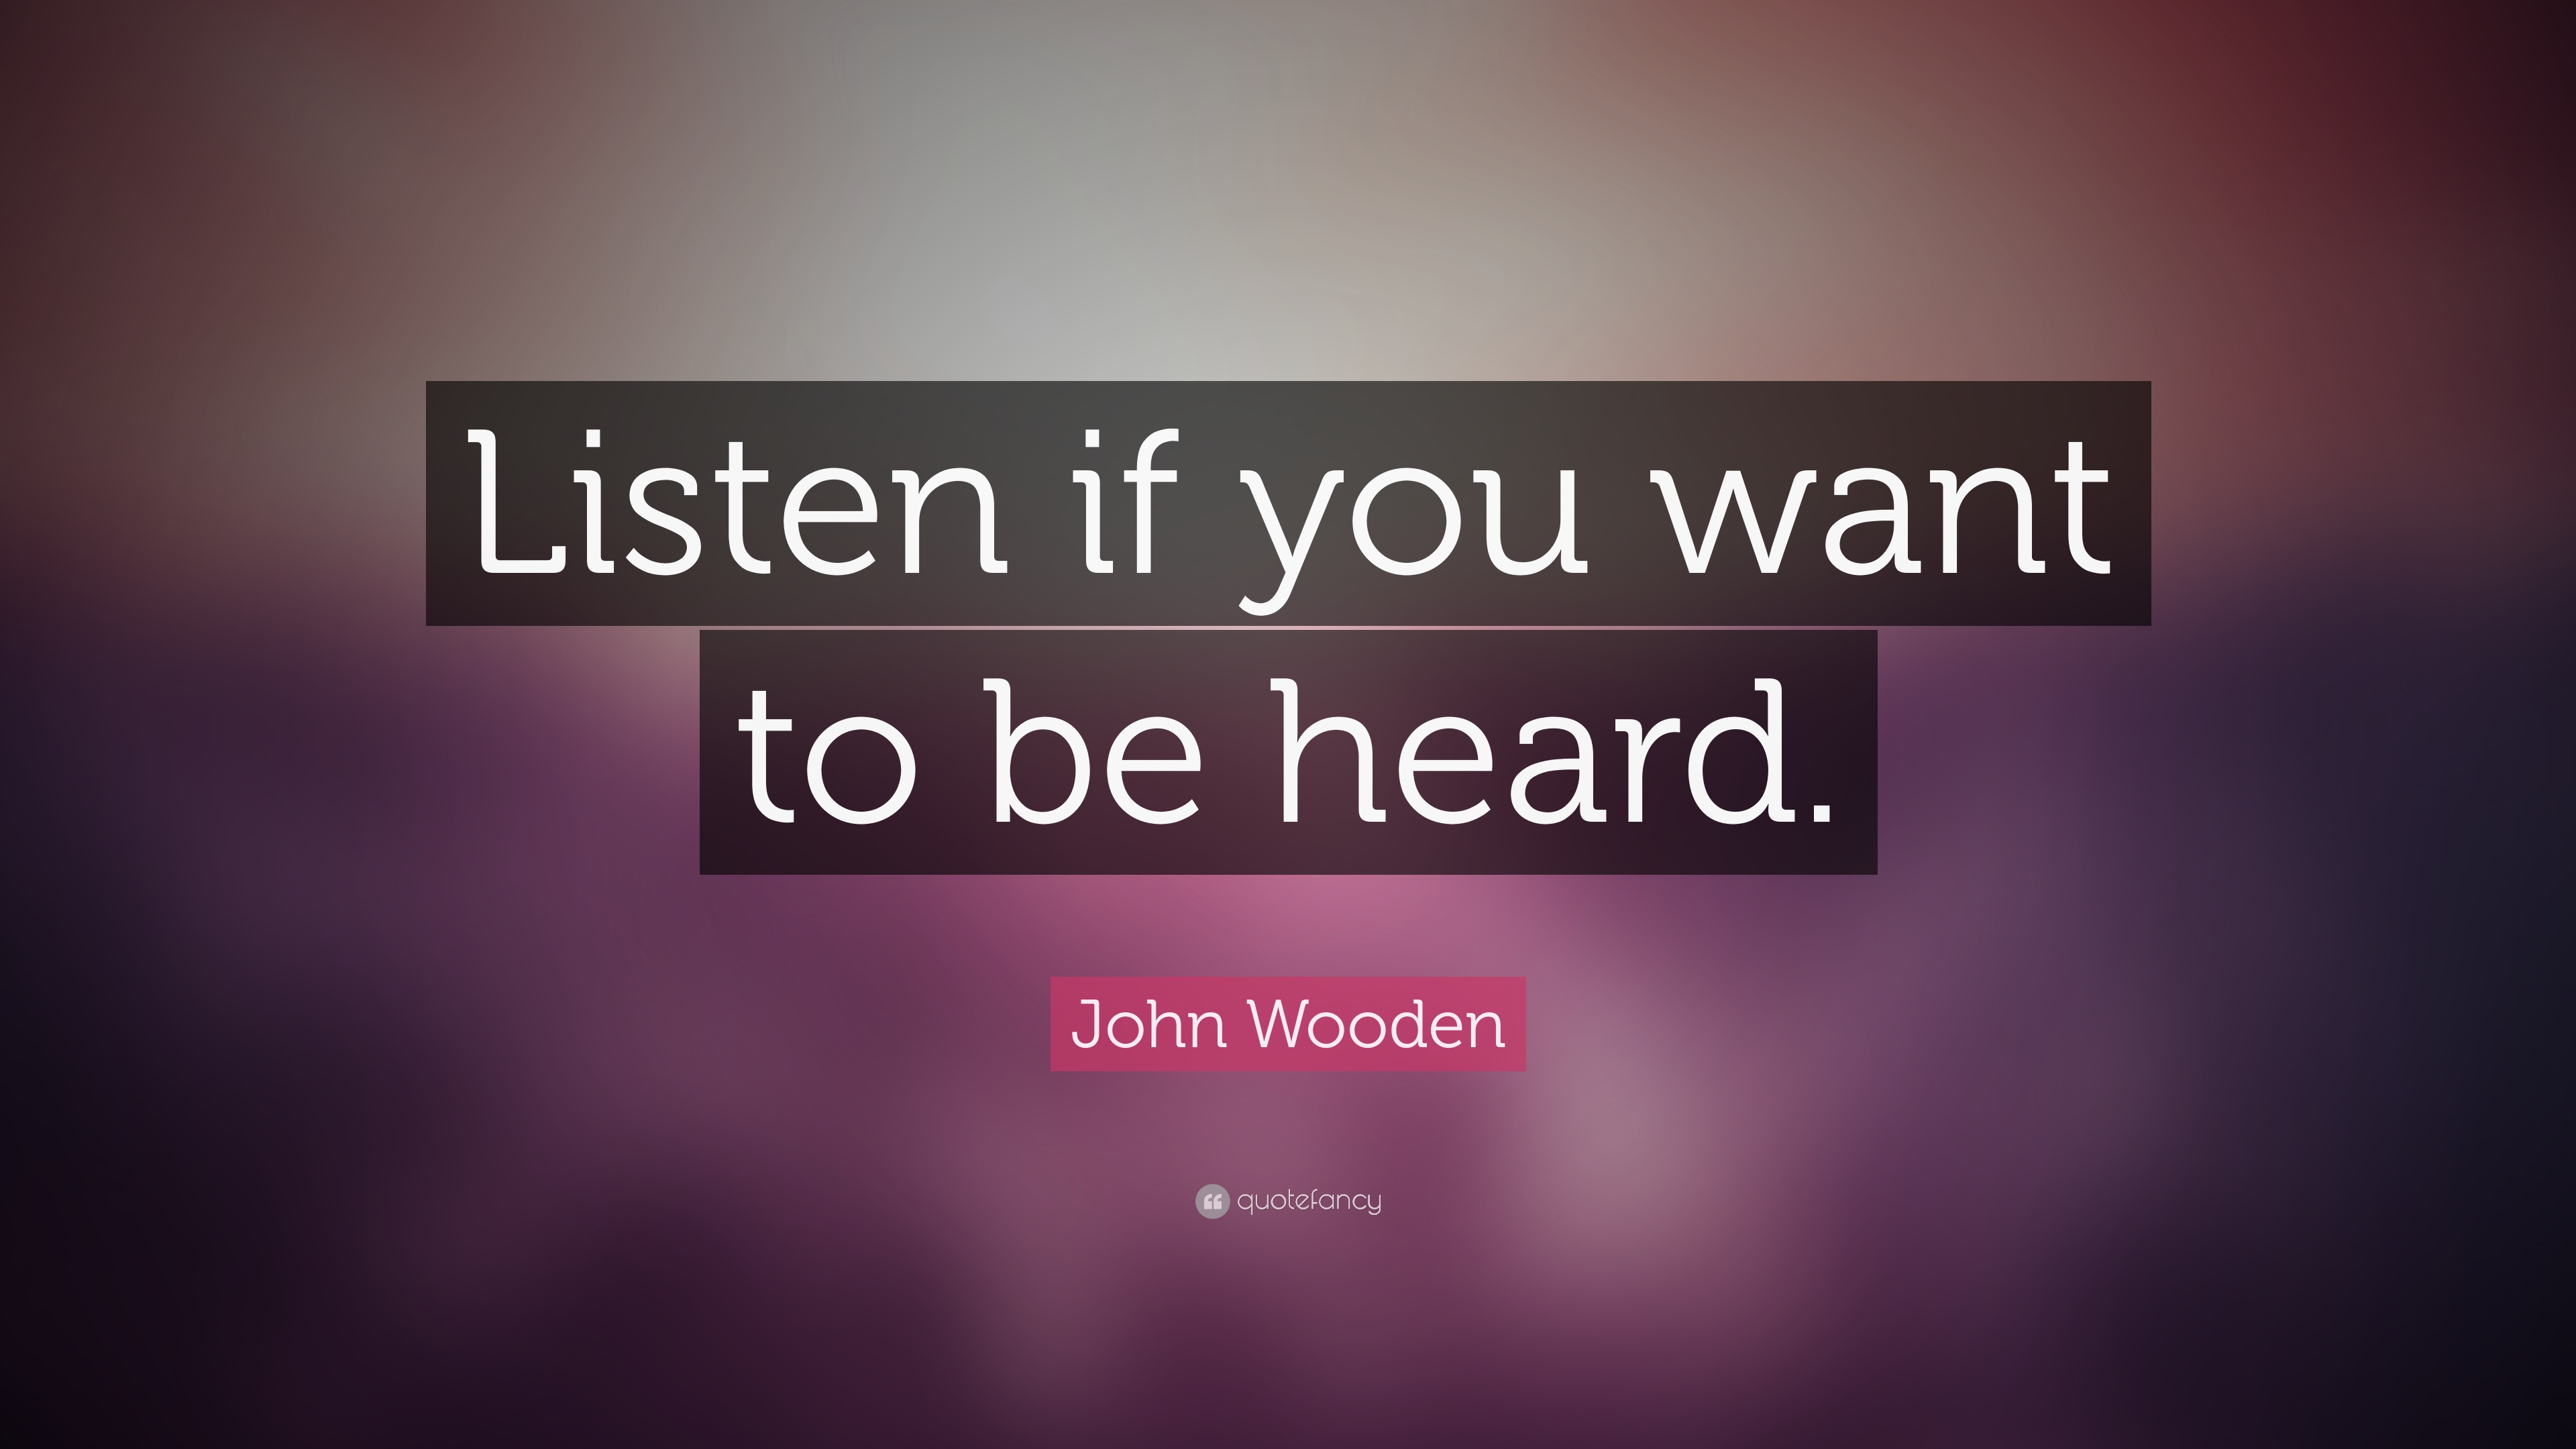 Theodore Roosevelt Wallpaper Quote John Wooden Quote Listen If You Want To Be Heard 15